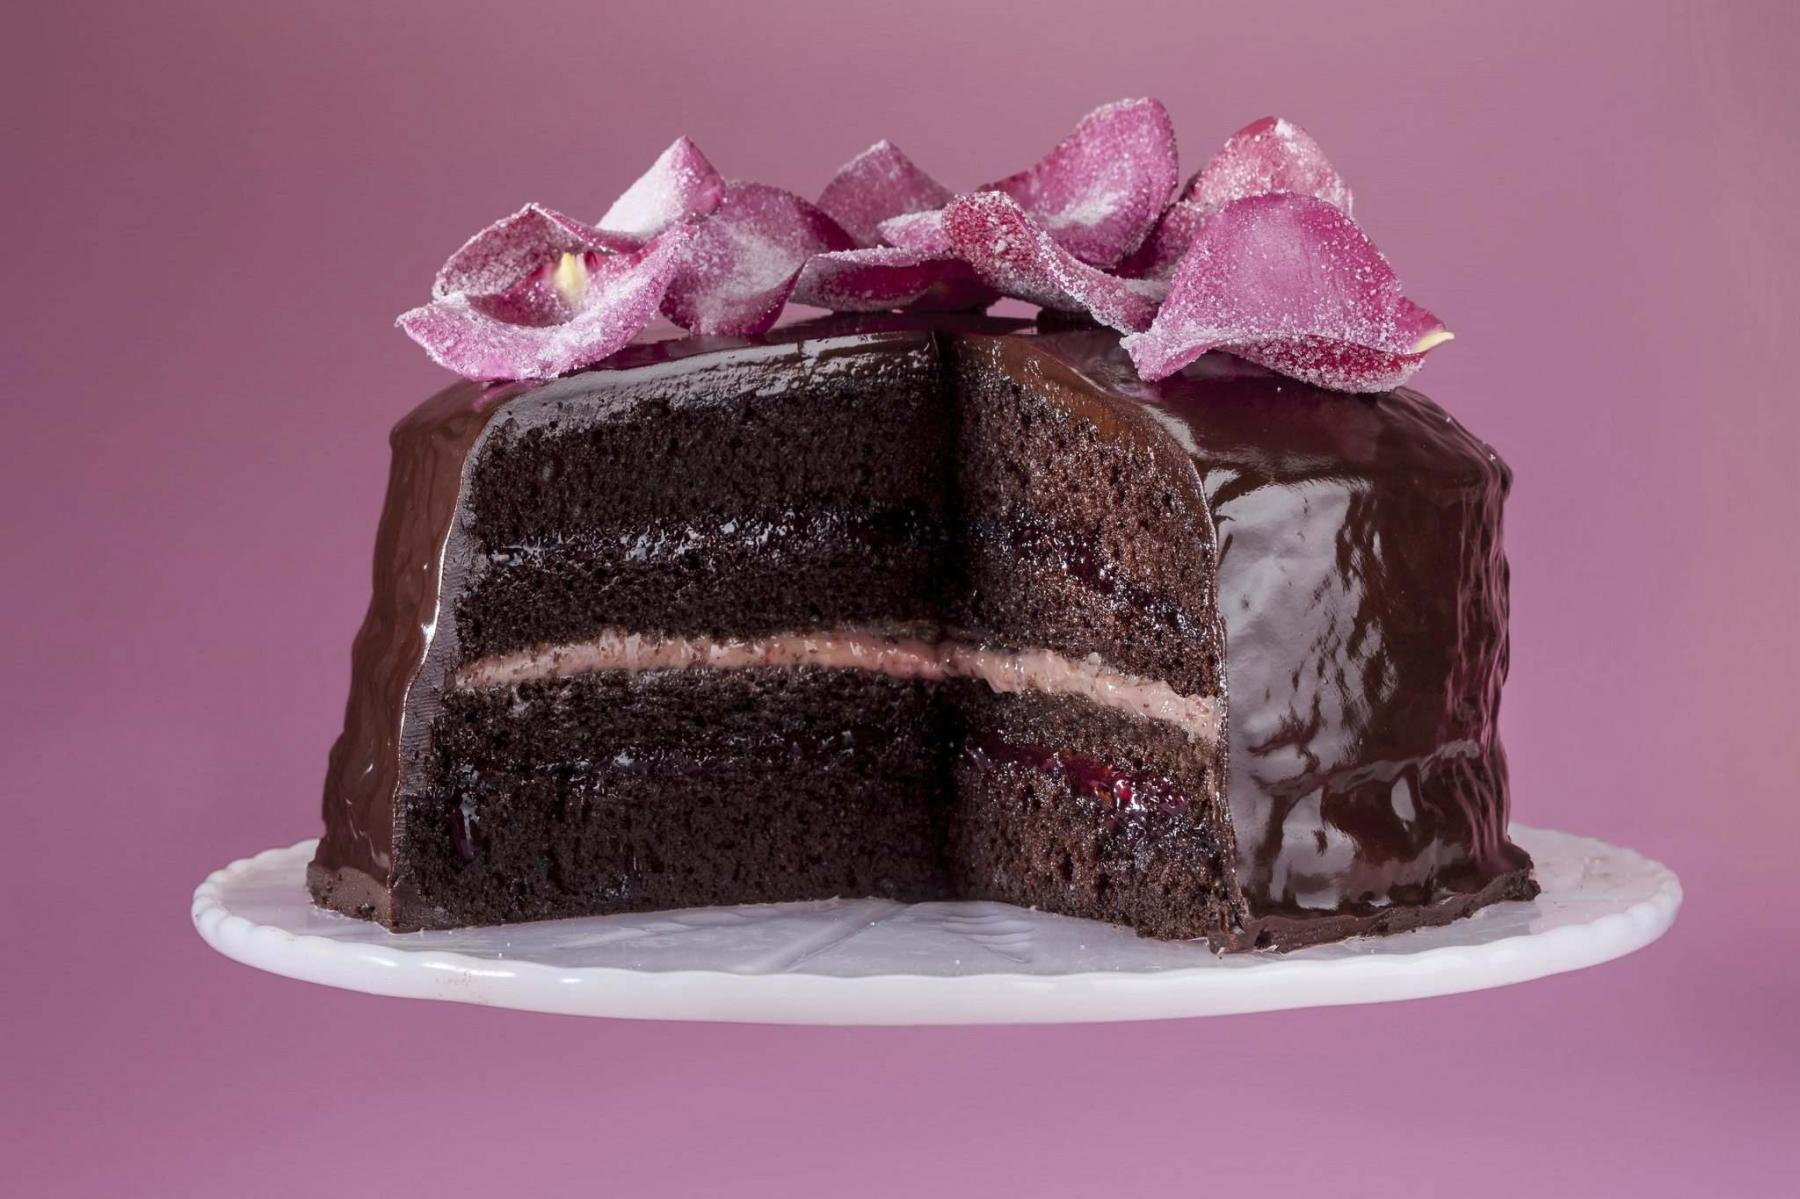 <p>Bill Hogan / Chicago Tribune files</p><p>If you want your cakes to leave 'em smiling, take care to bake right after mixing, use more layers for a given amount of batter and don't peek!</p>